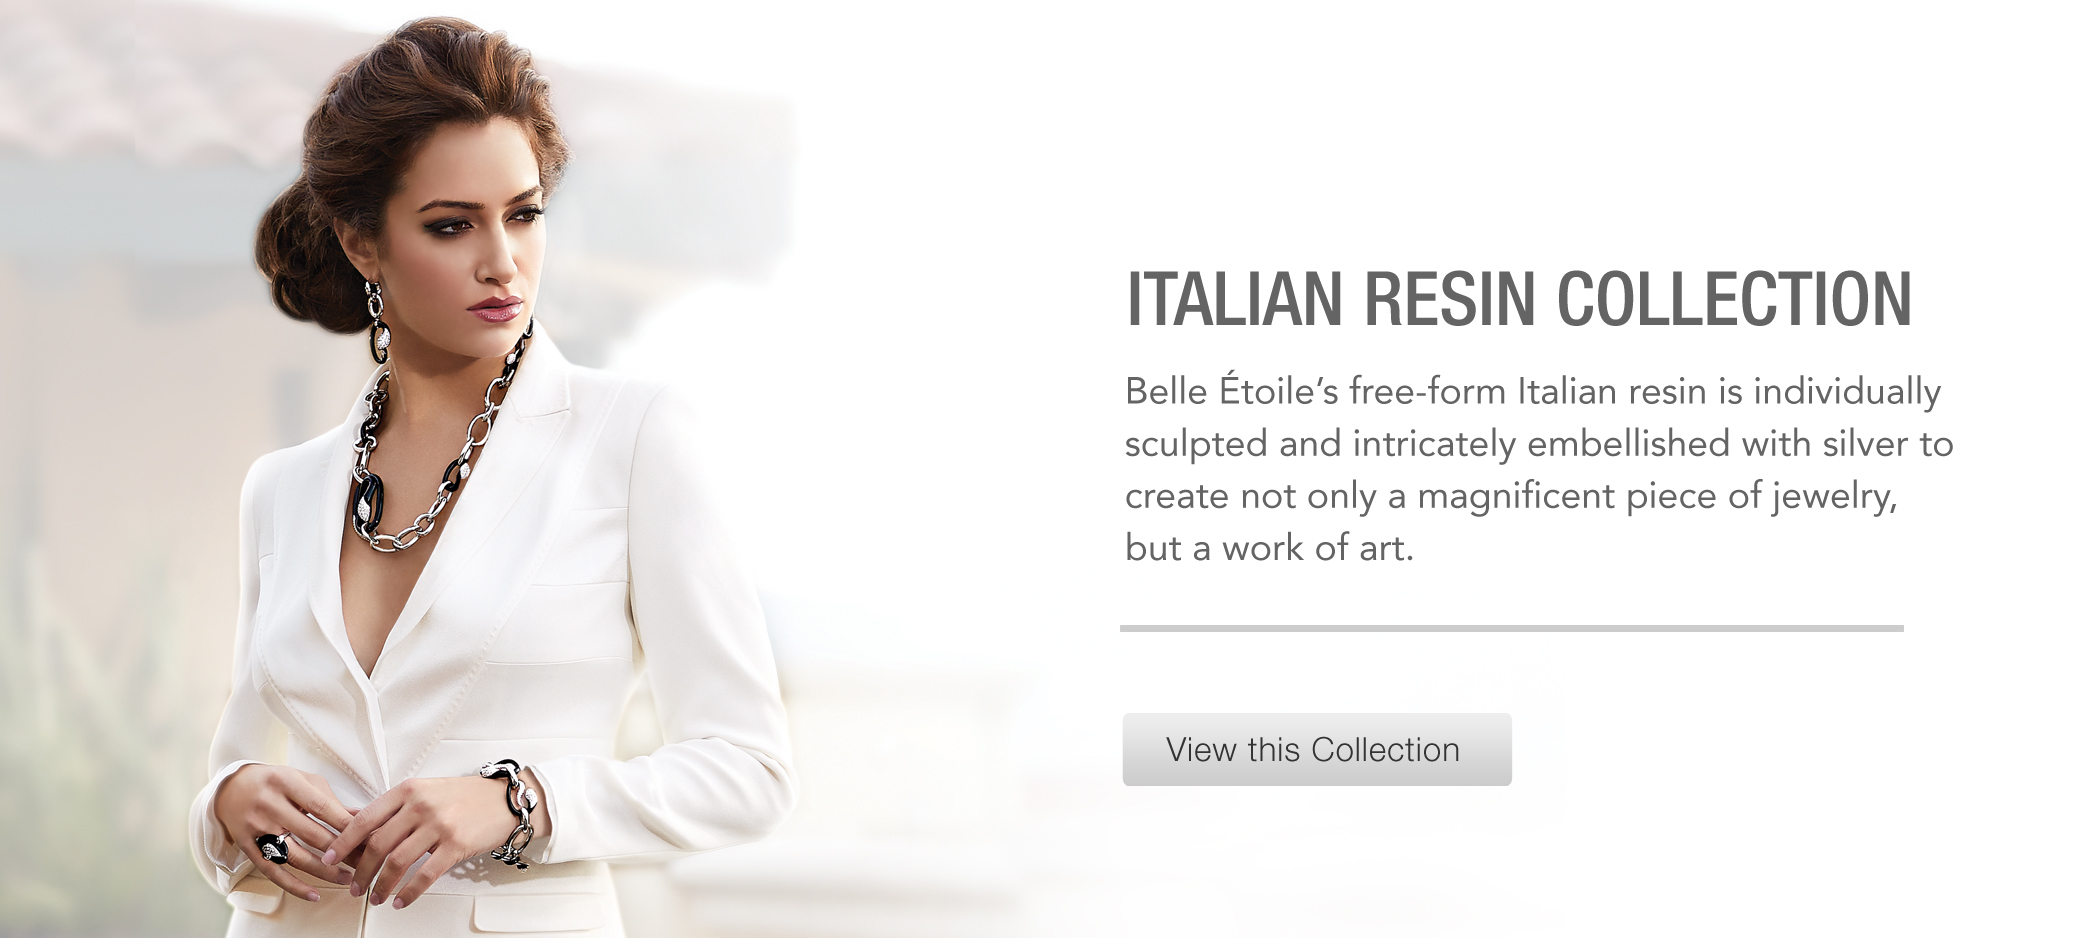 Italian Resin Collection